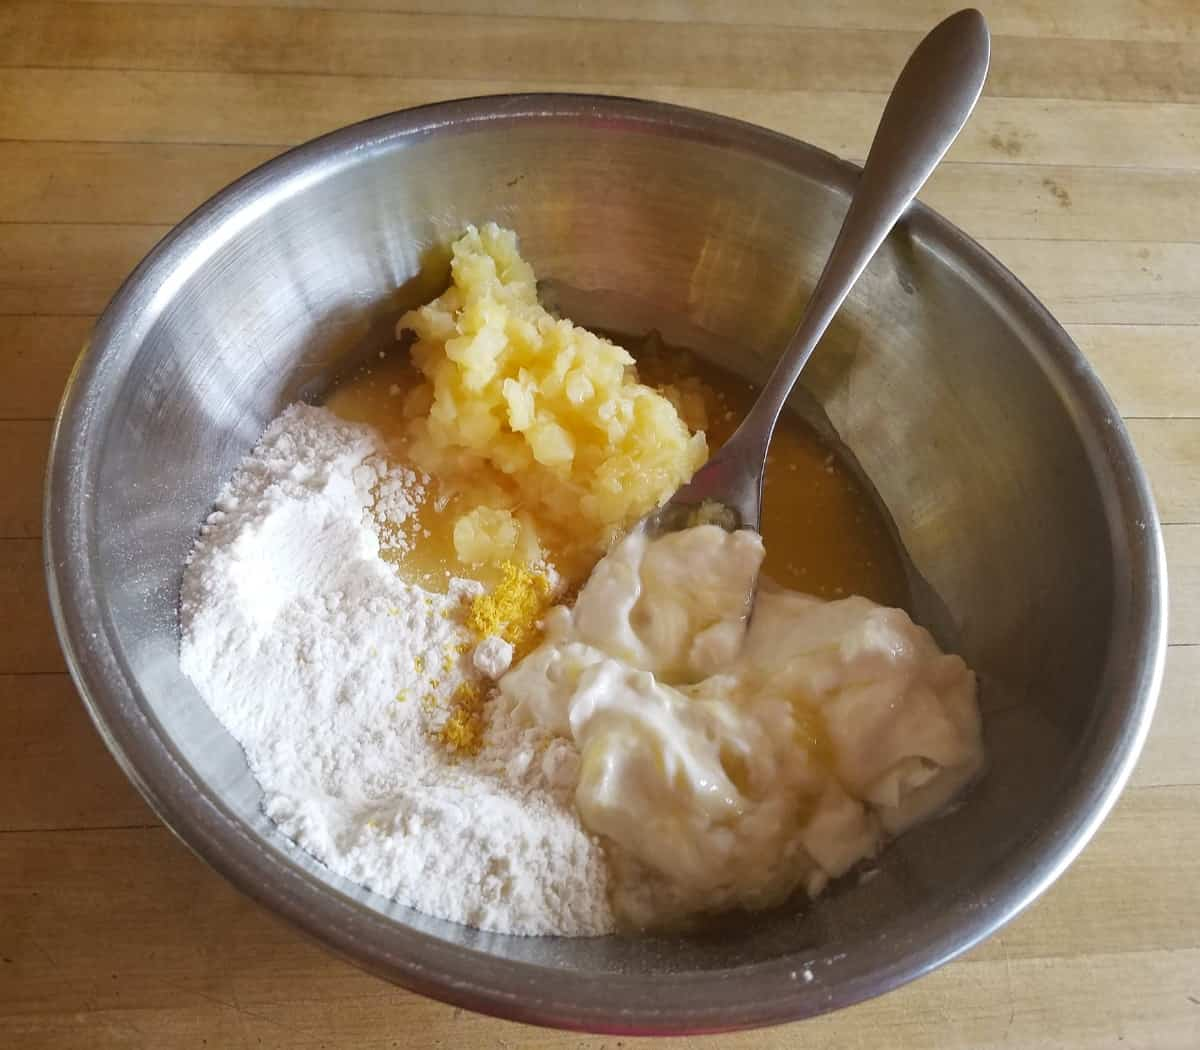 Mixing yellow cake mix, crushed pineapple and yogurt in mixing bowl with a fork.